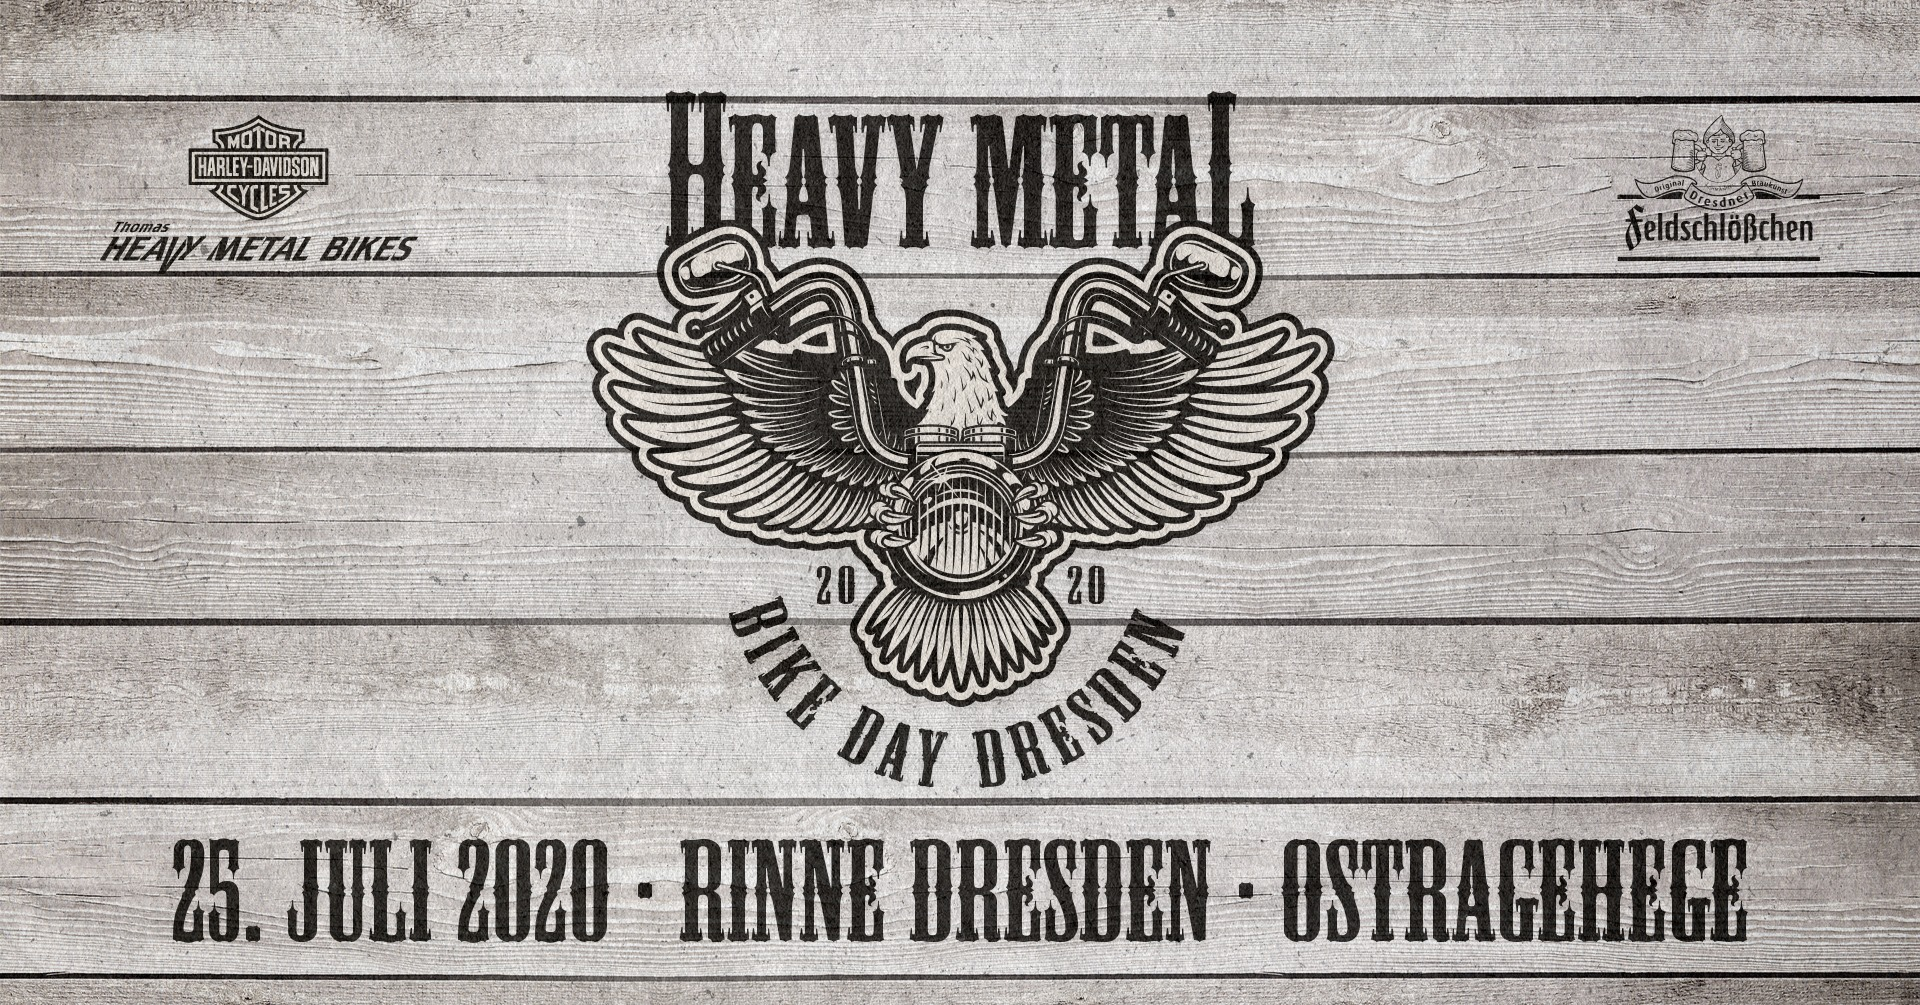 HEAVY METAL BIKE DAY DRESDEN